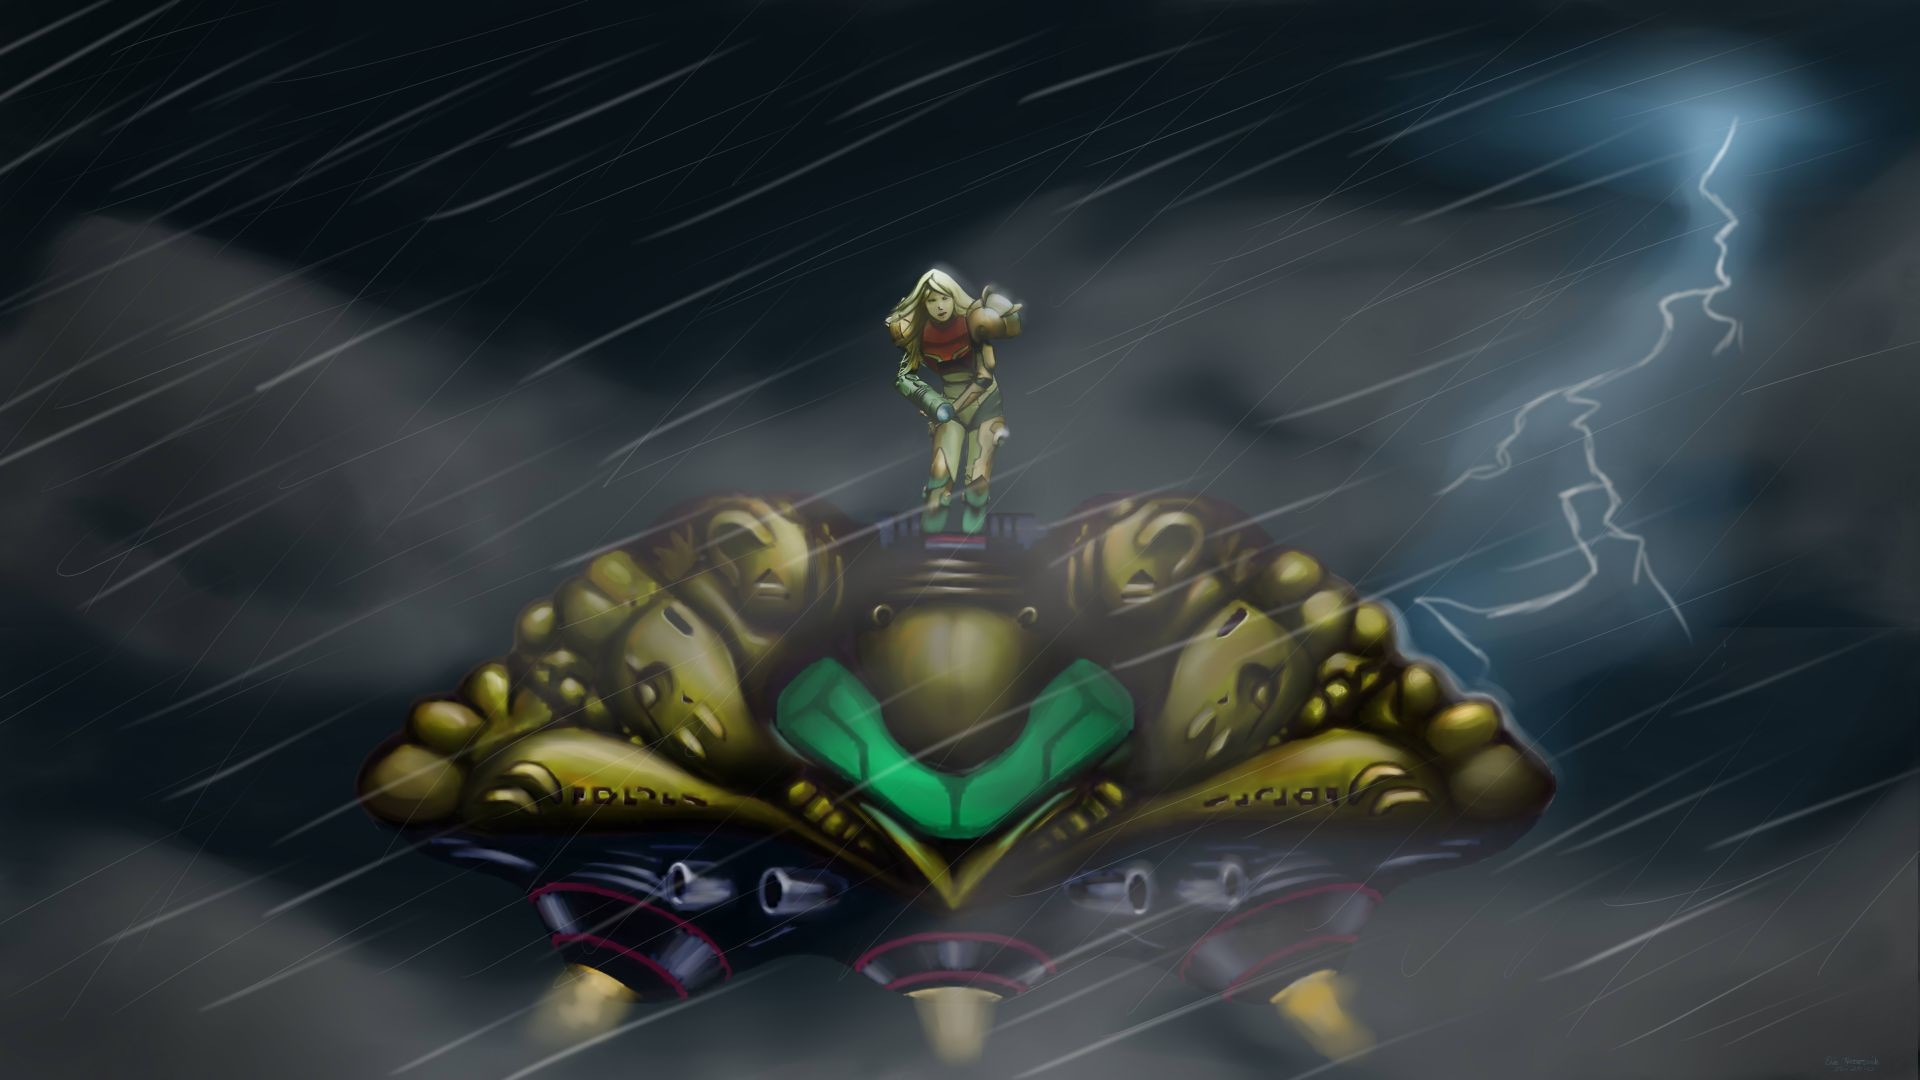 Image gallery for : metroid wallpapers